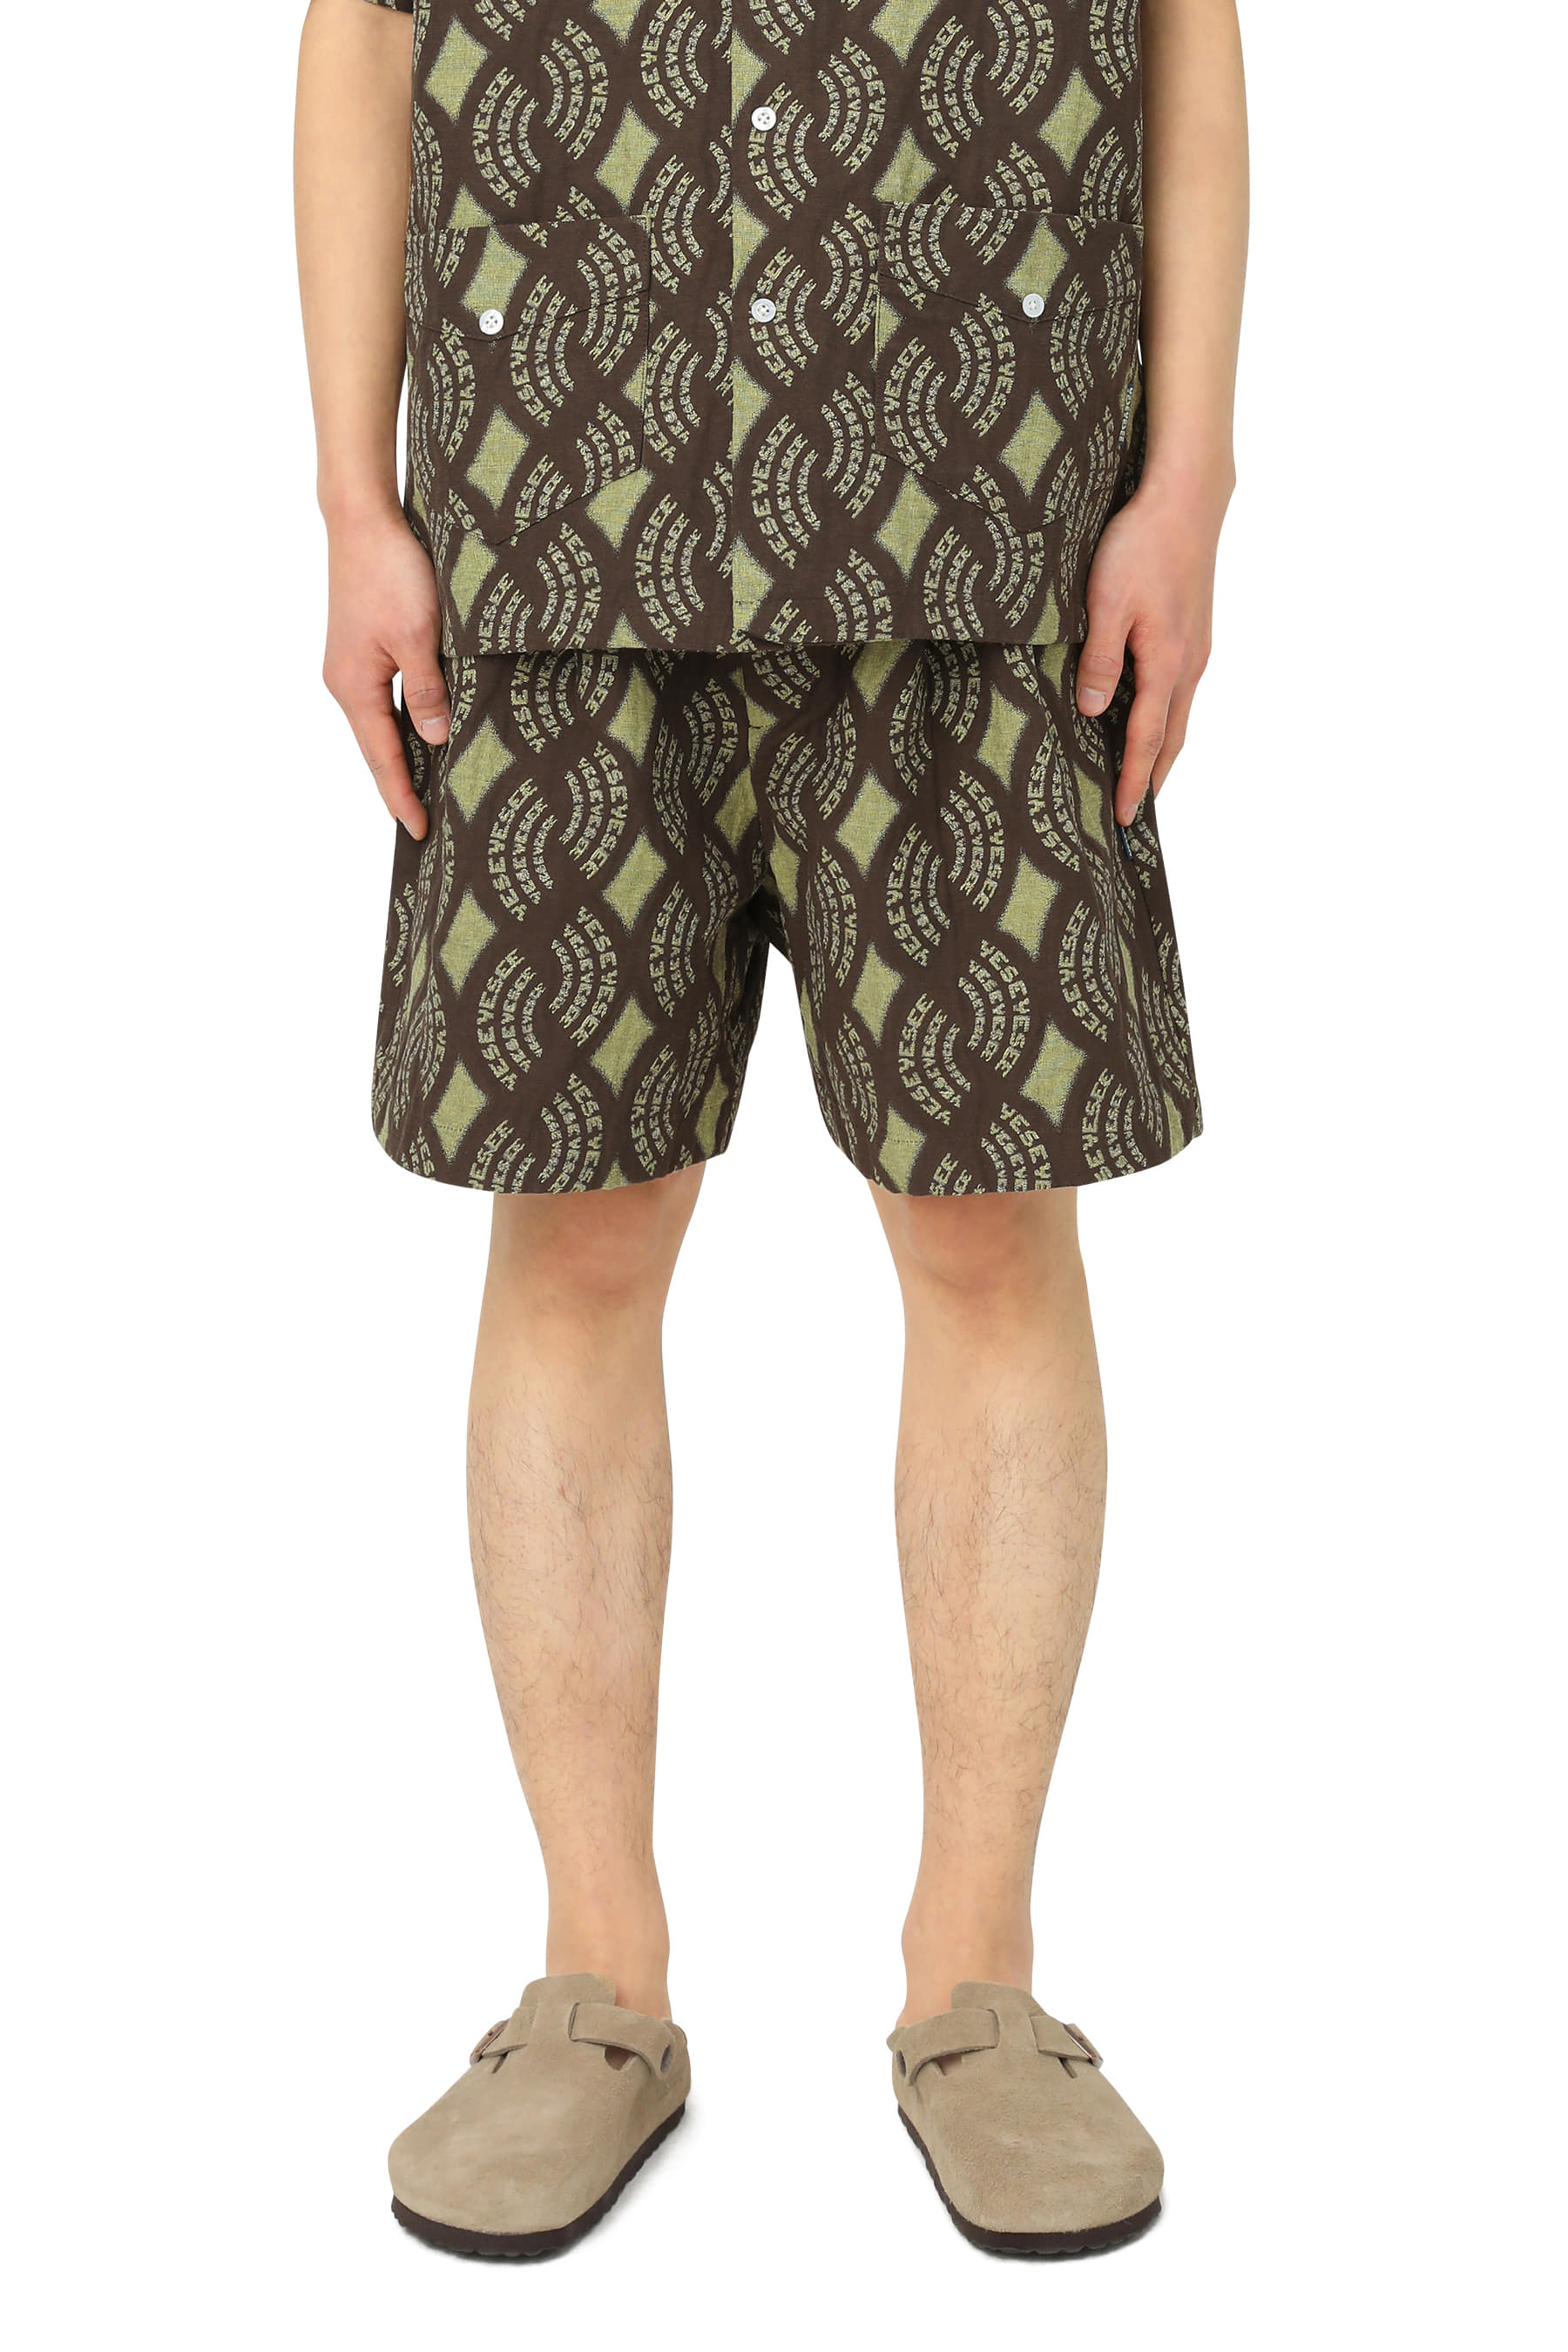 Y.E.S Jacquard Shorts Brown